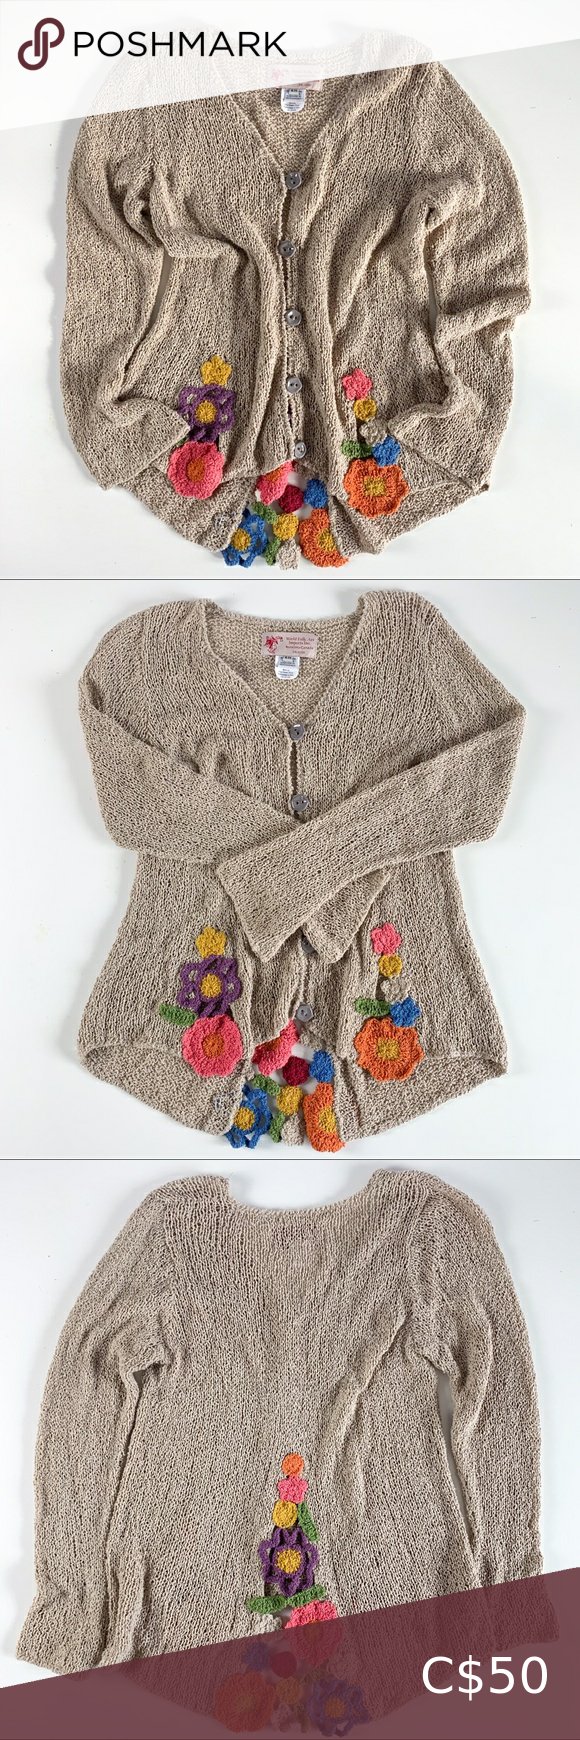 Vintage folk art knit floral cardigan